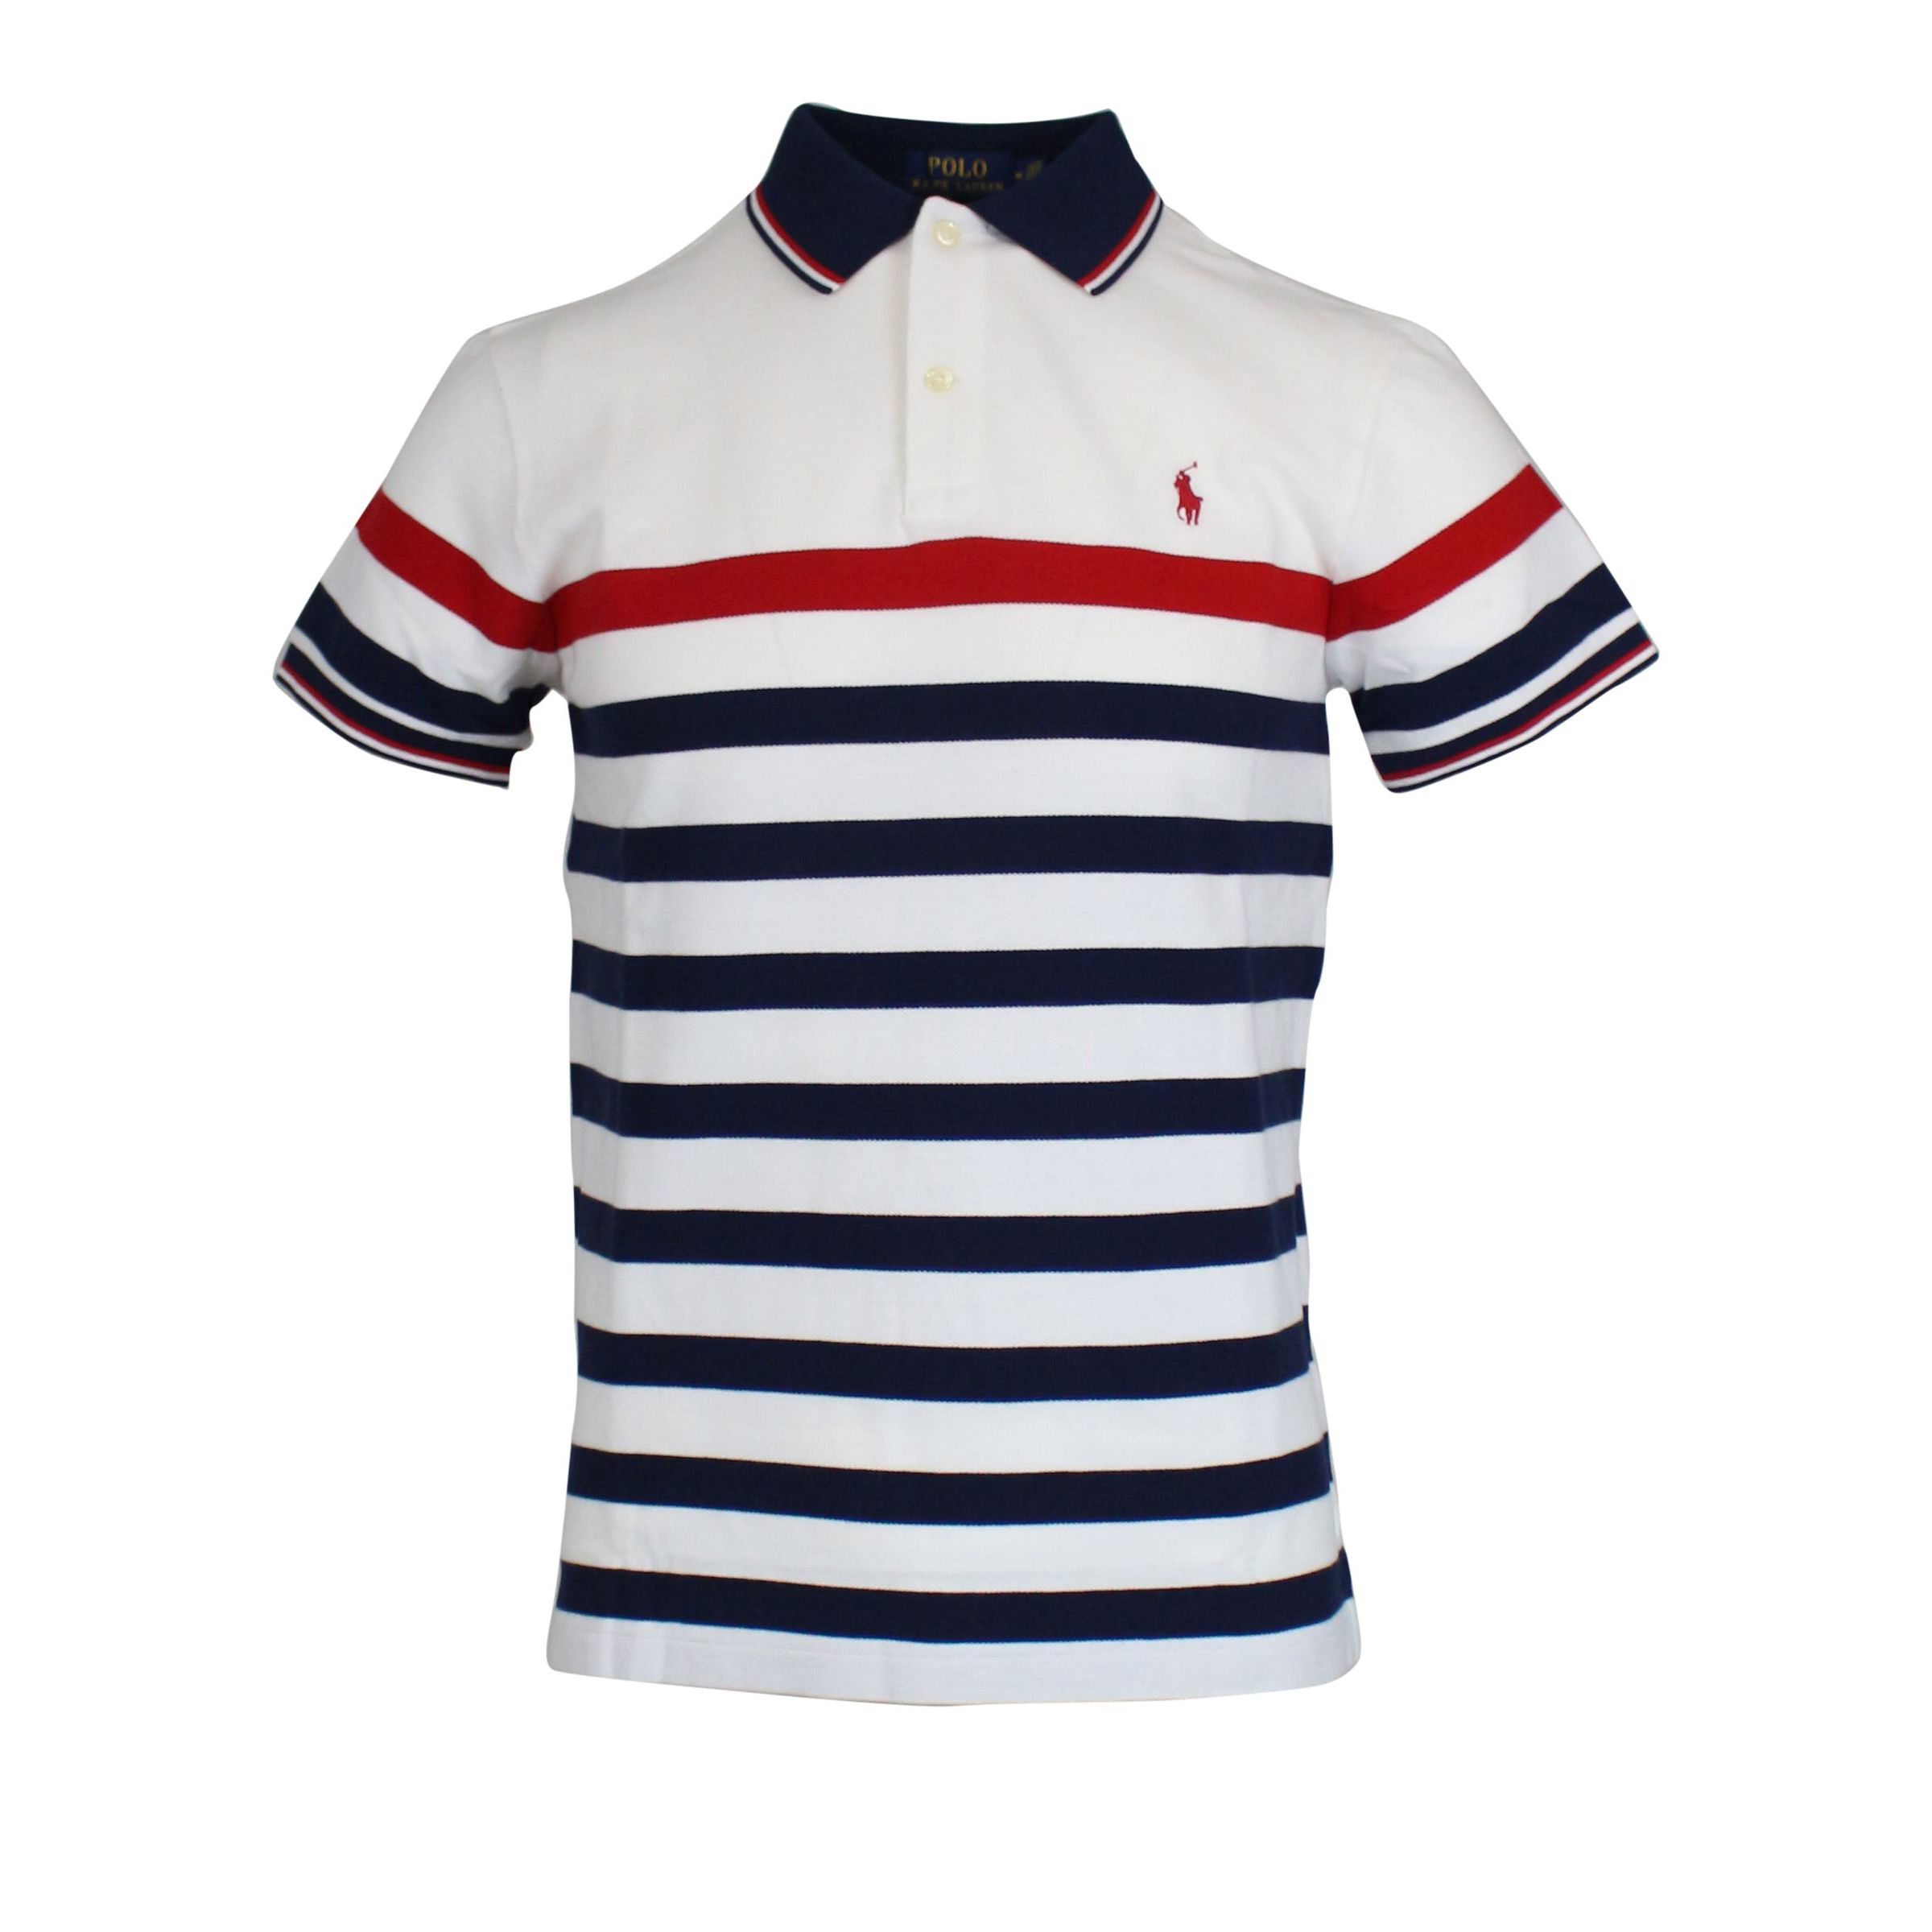 info for 03eab aef58 Cotton polo shirt with striped pattern